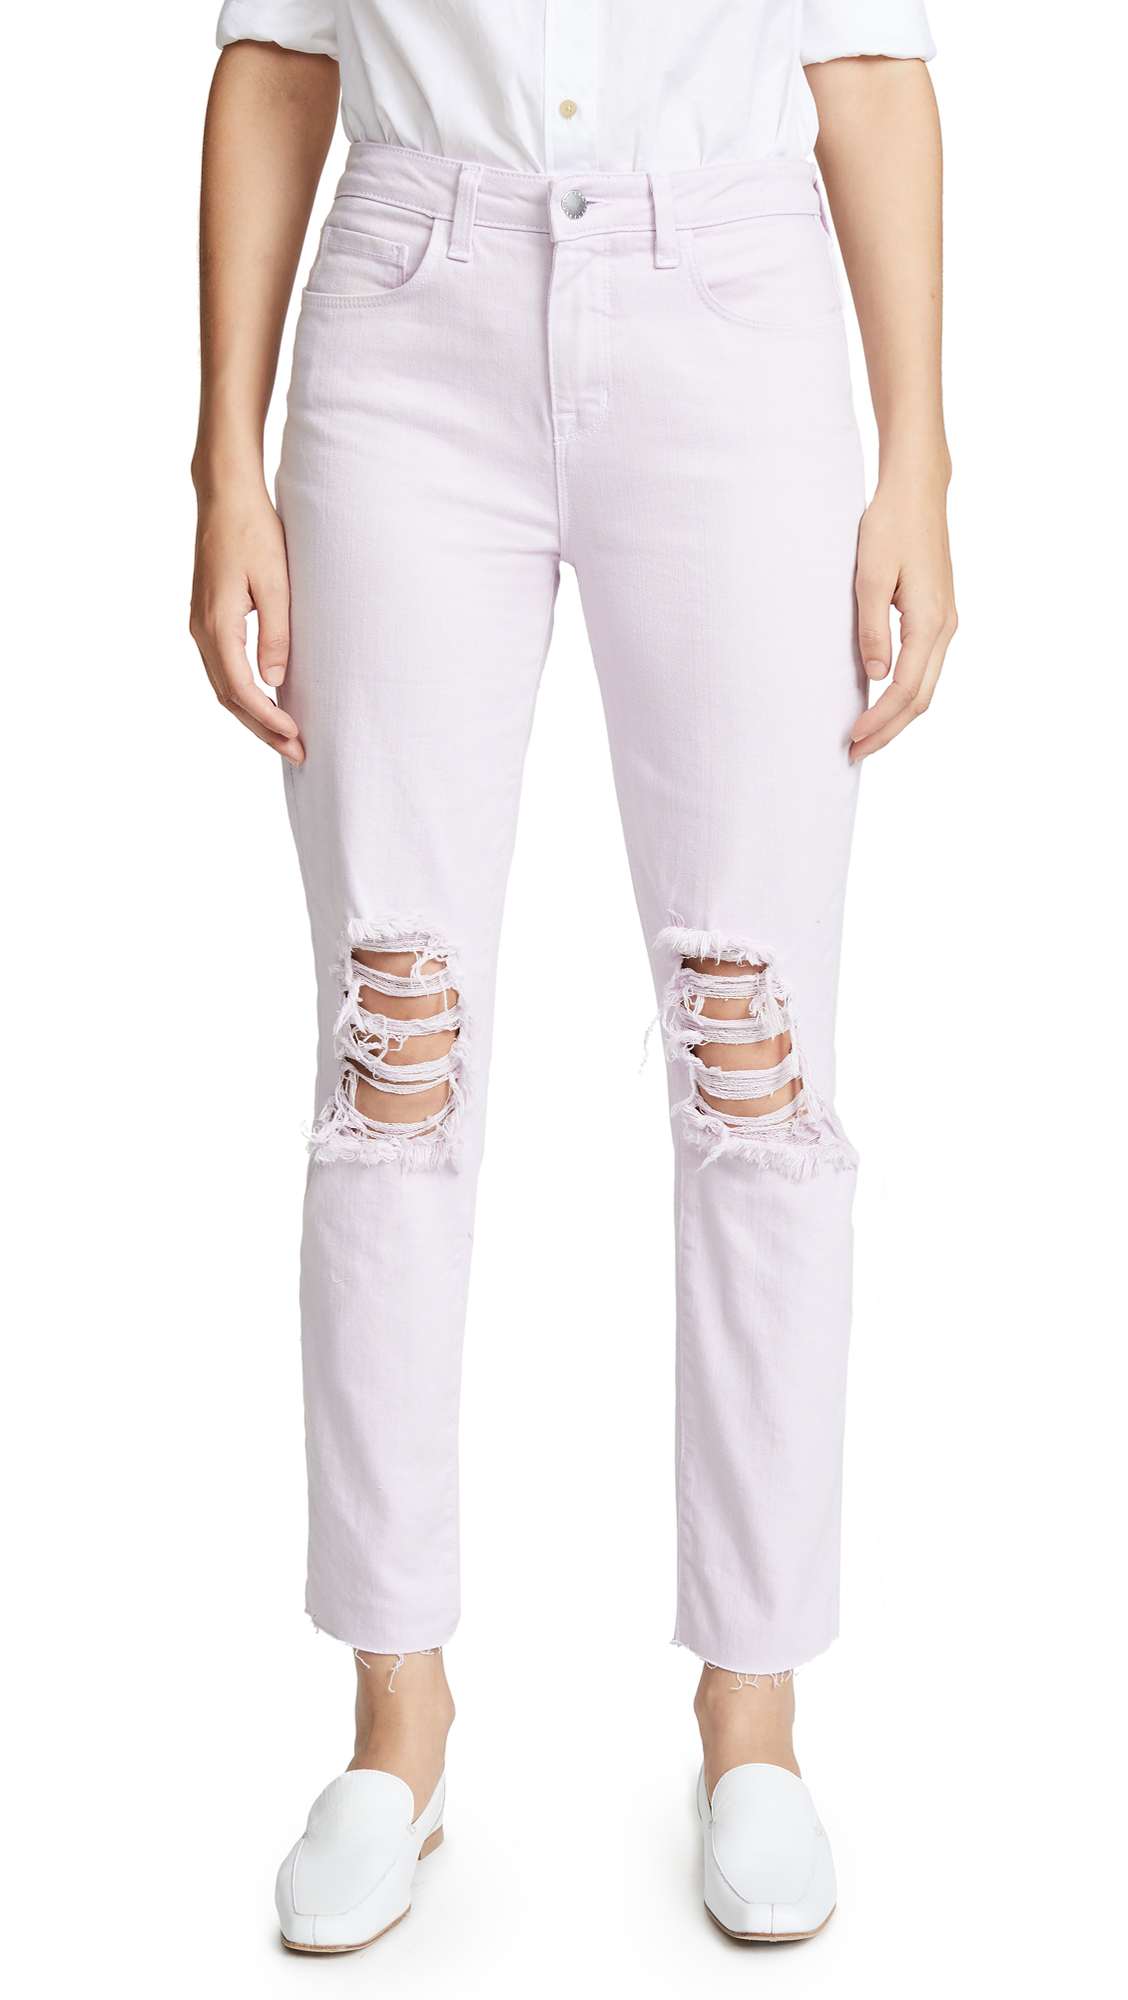 L'AGENCE Luna High Rise Straight Jeans In Violet Destruct